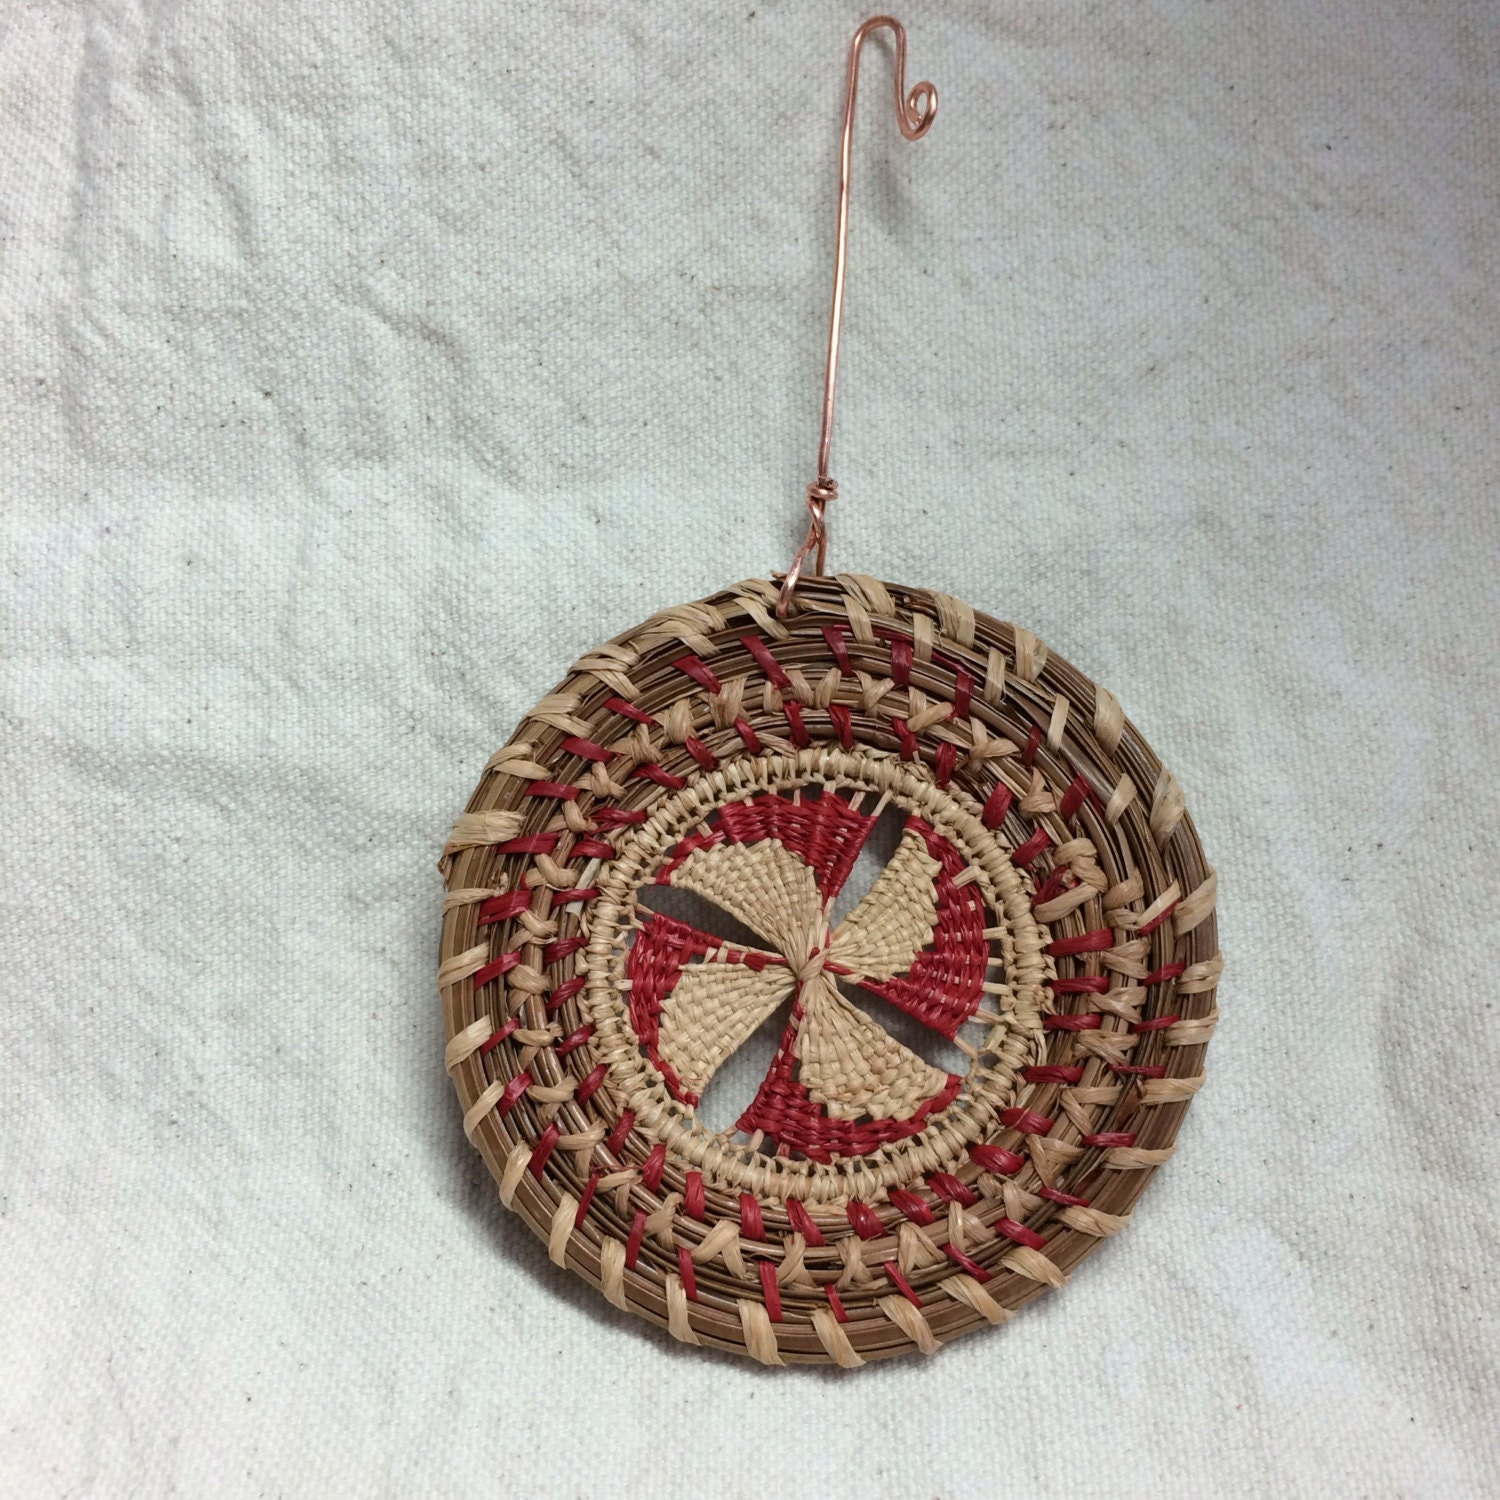 Pine needle christmas ornament all natural materials handwoven